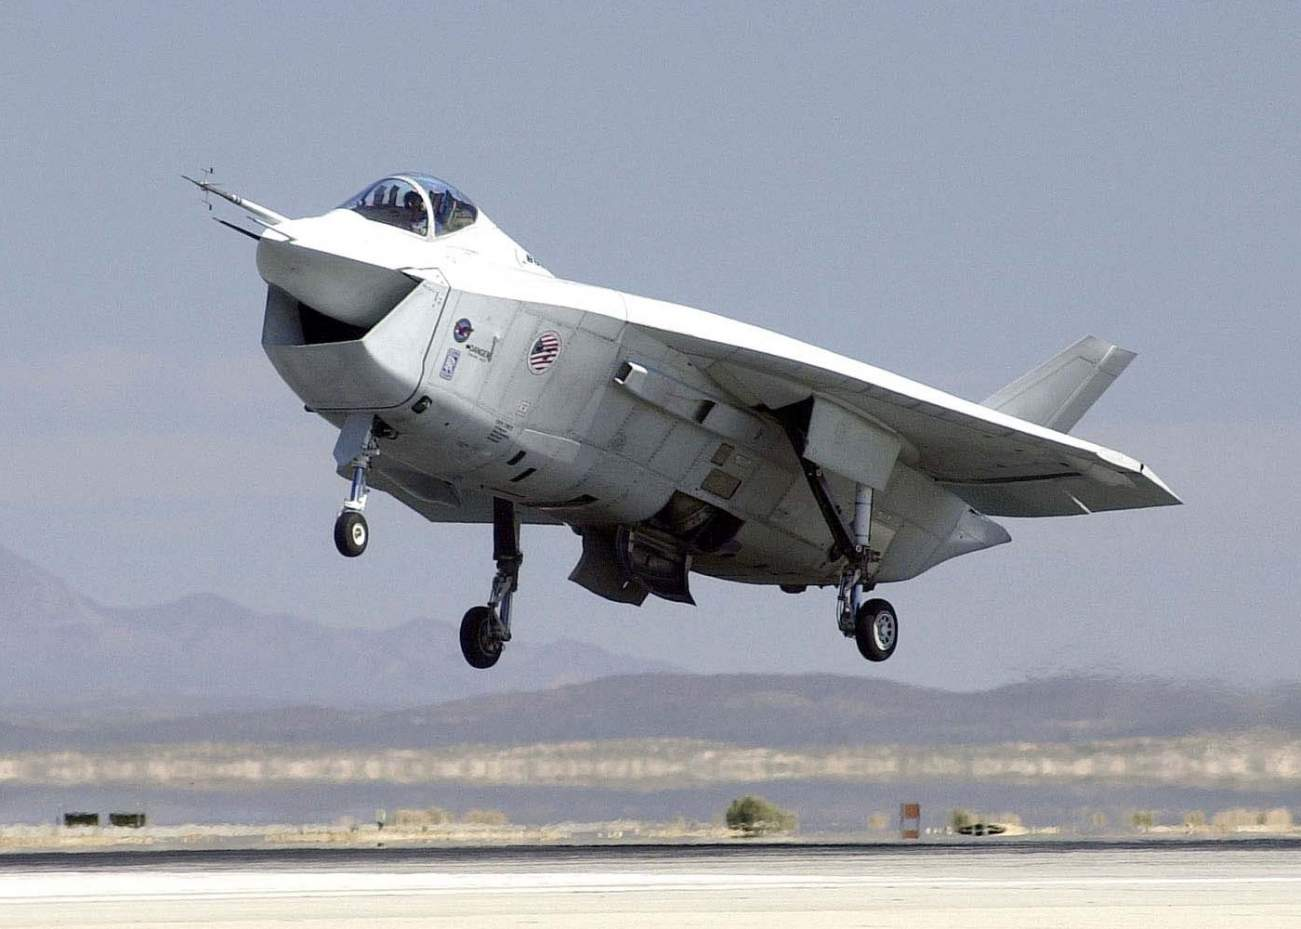 See This Picture? The F-35 Could Have Looked Like This